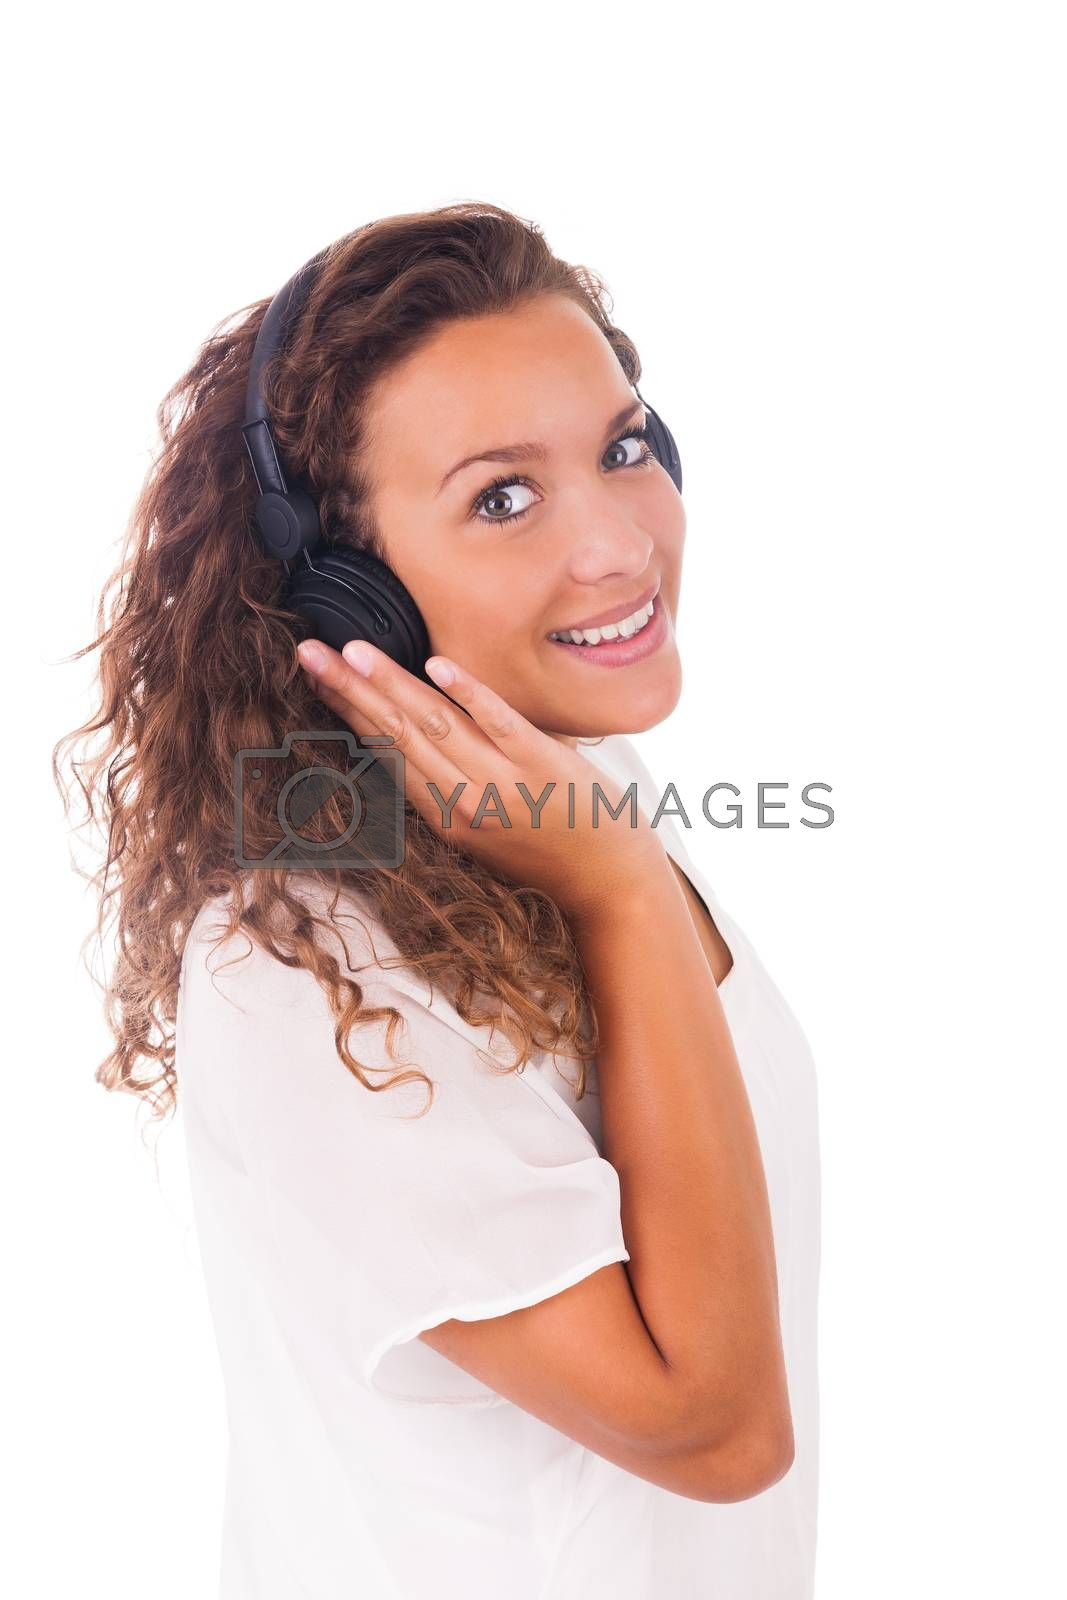 Woman listening to music with headphones by michel74100